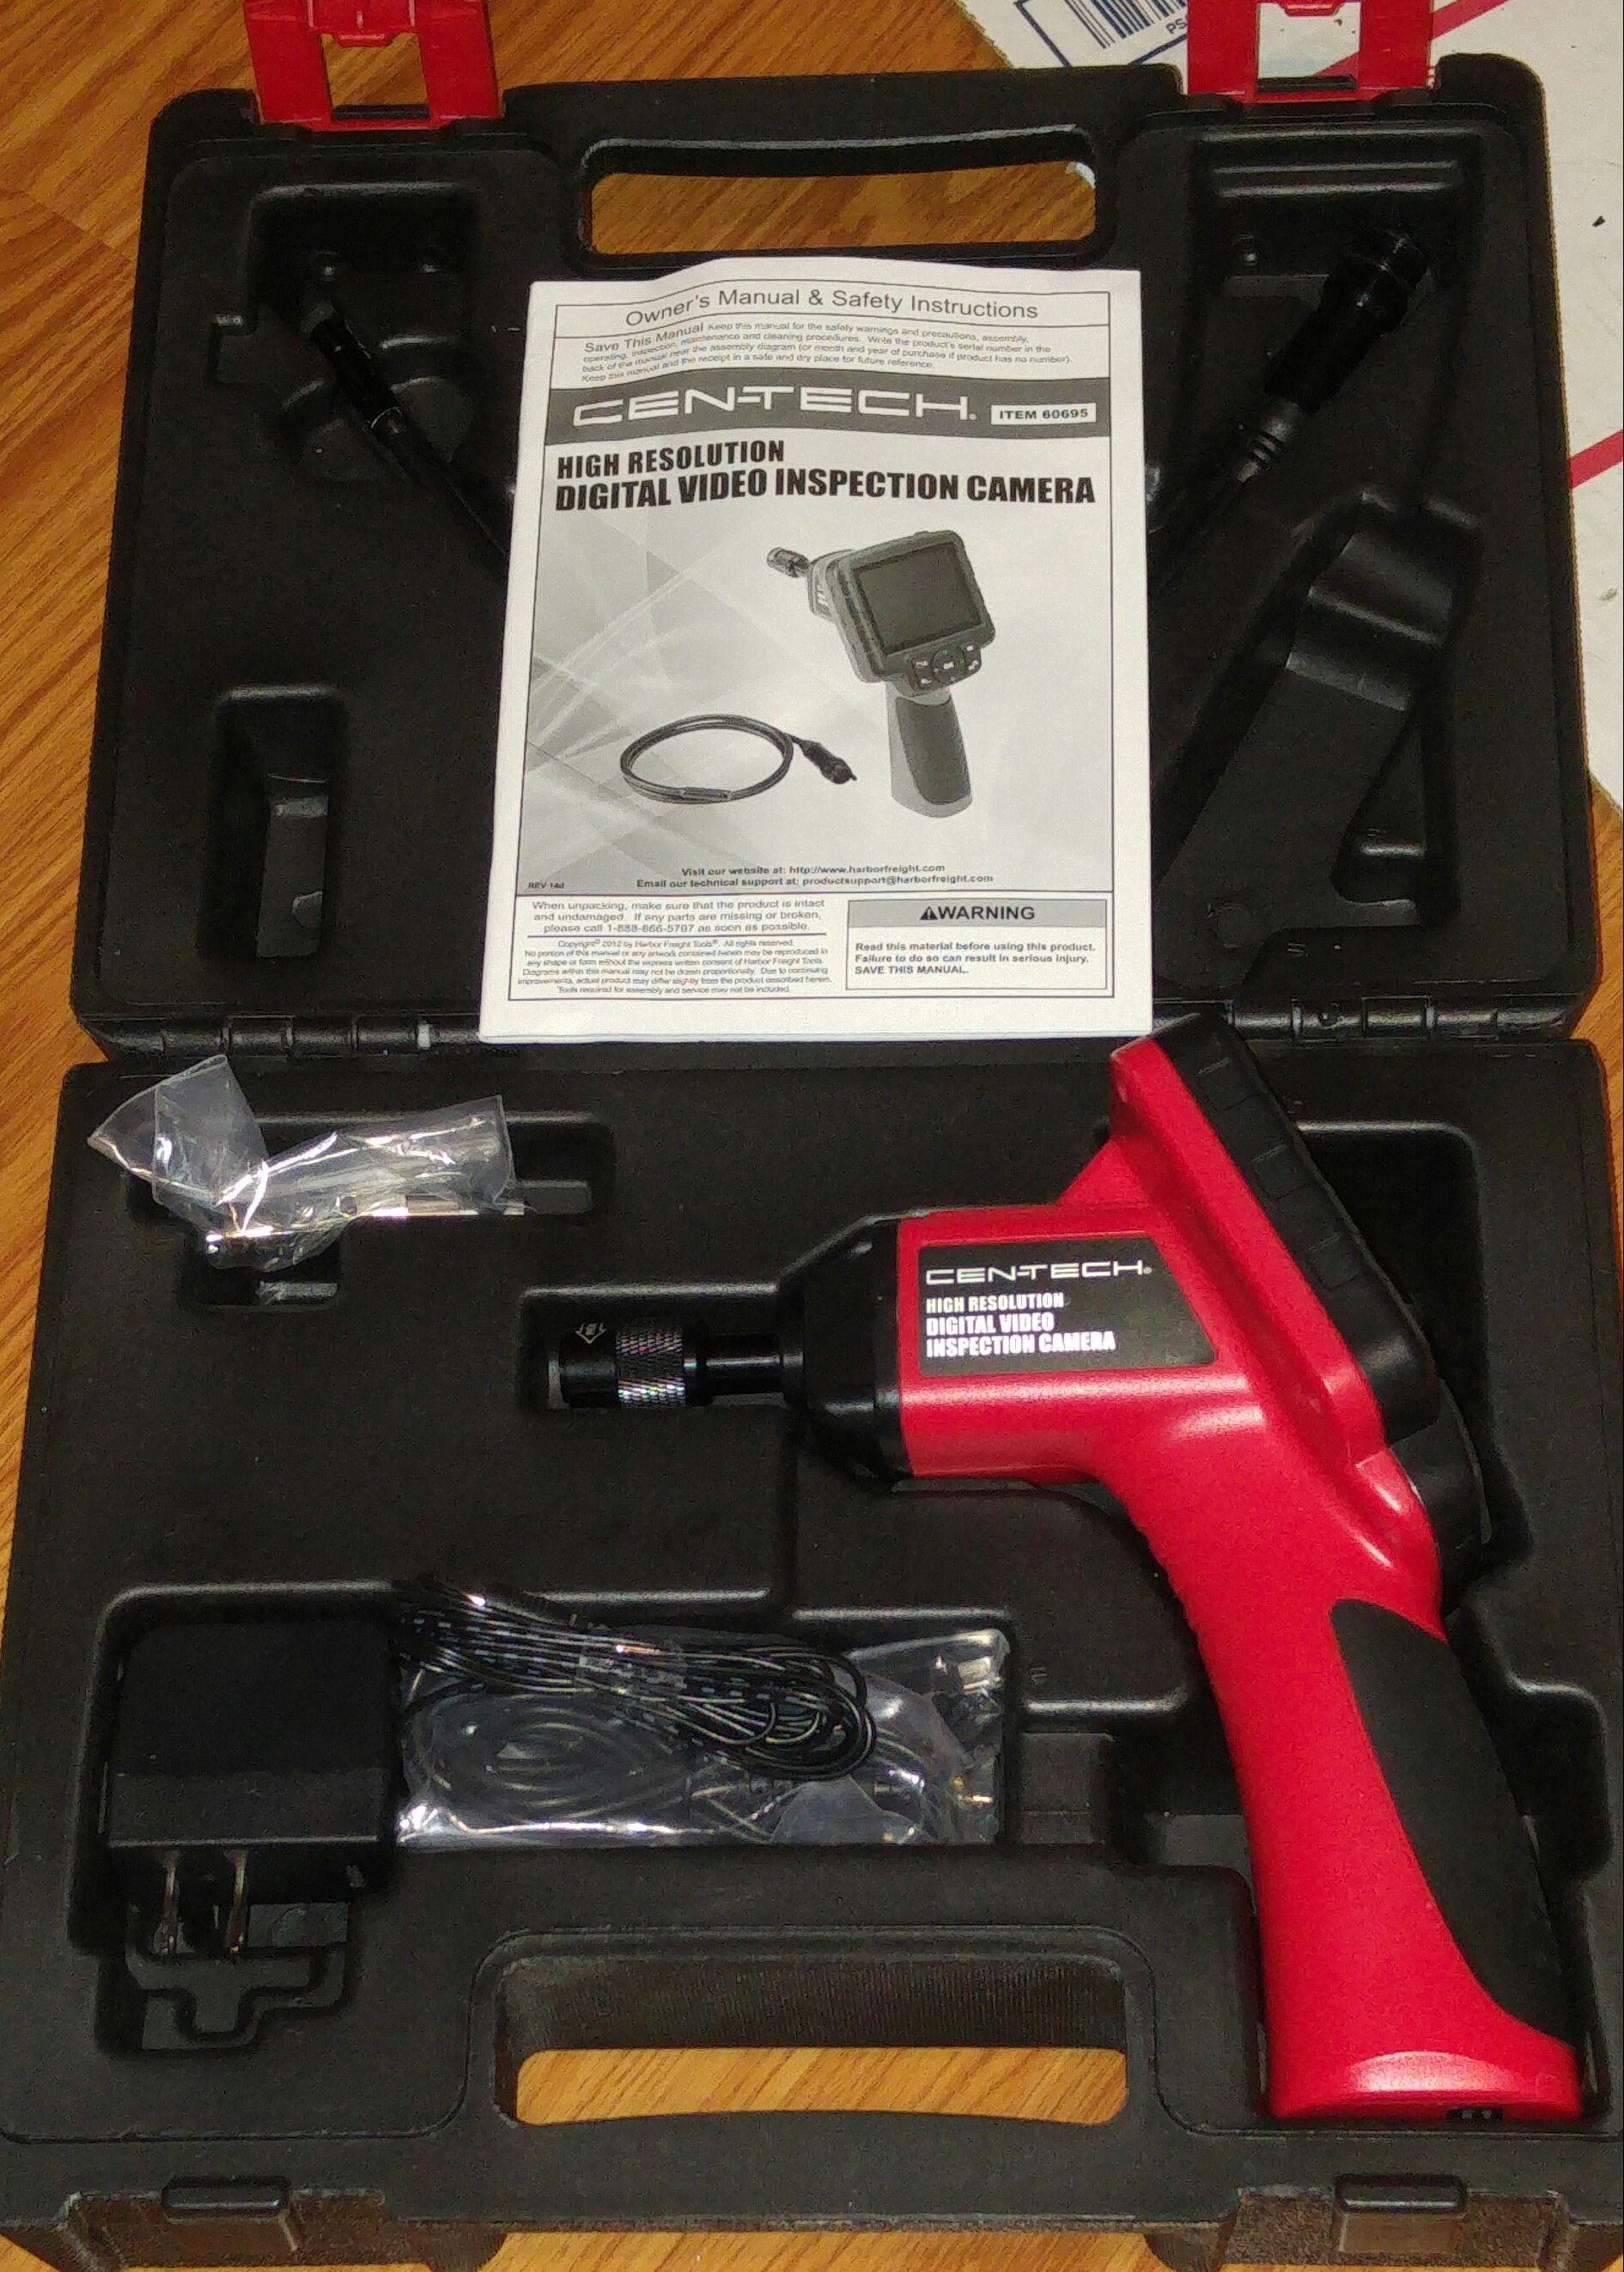 New High Resolution Color Portable Inspection Camera System... mint with case.